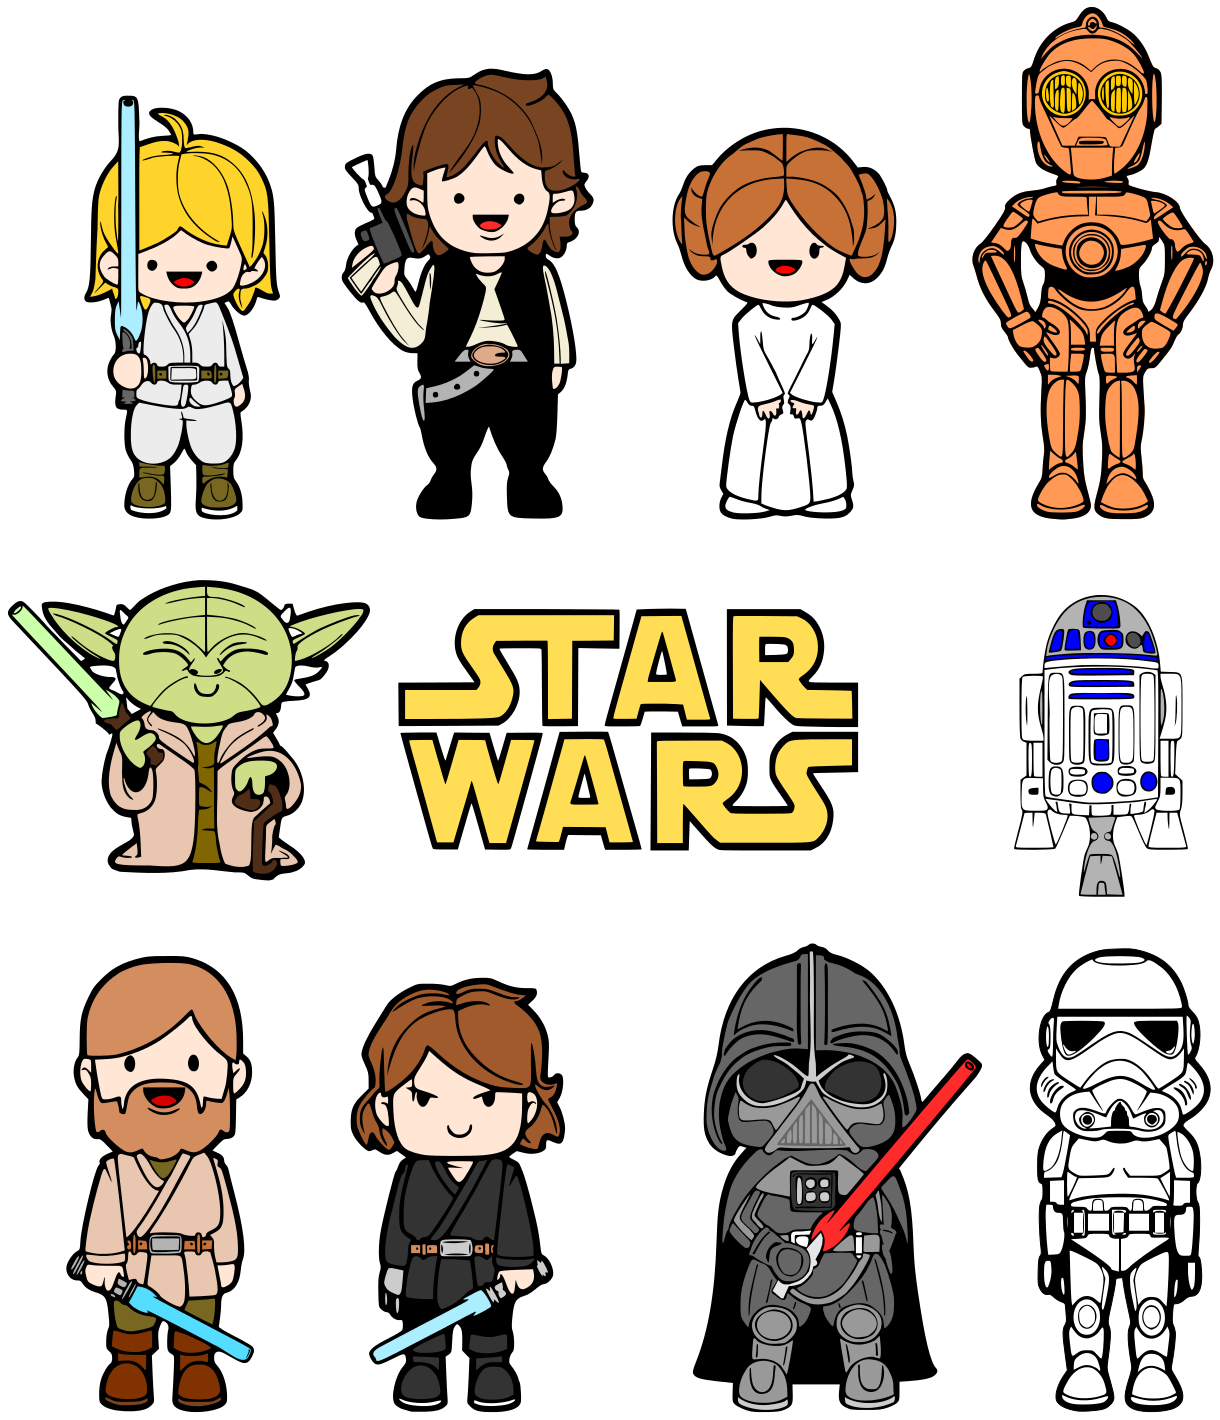 Star Wars Characters Clipart - Clipart Kid: www.clipartkid.com/star-wars-characters-cliparts